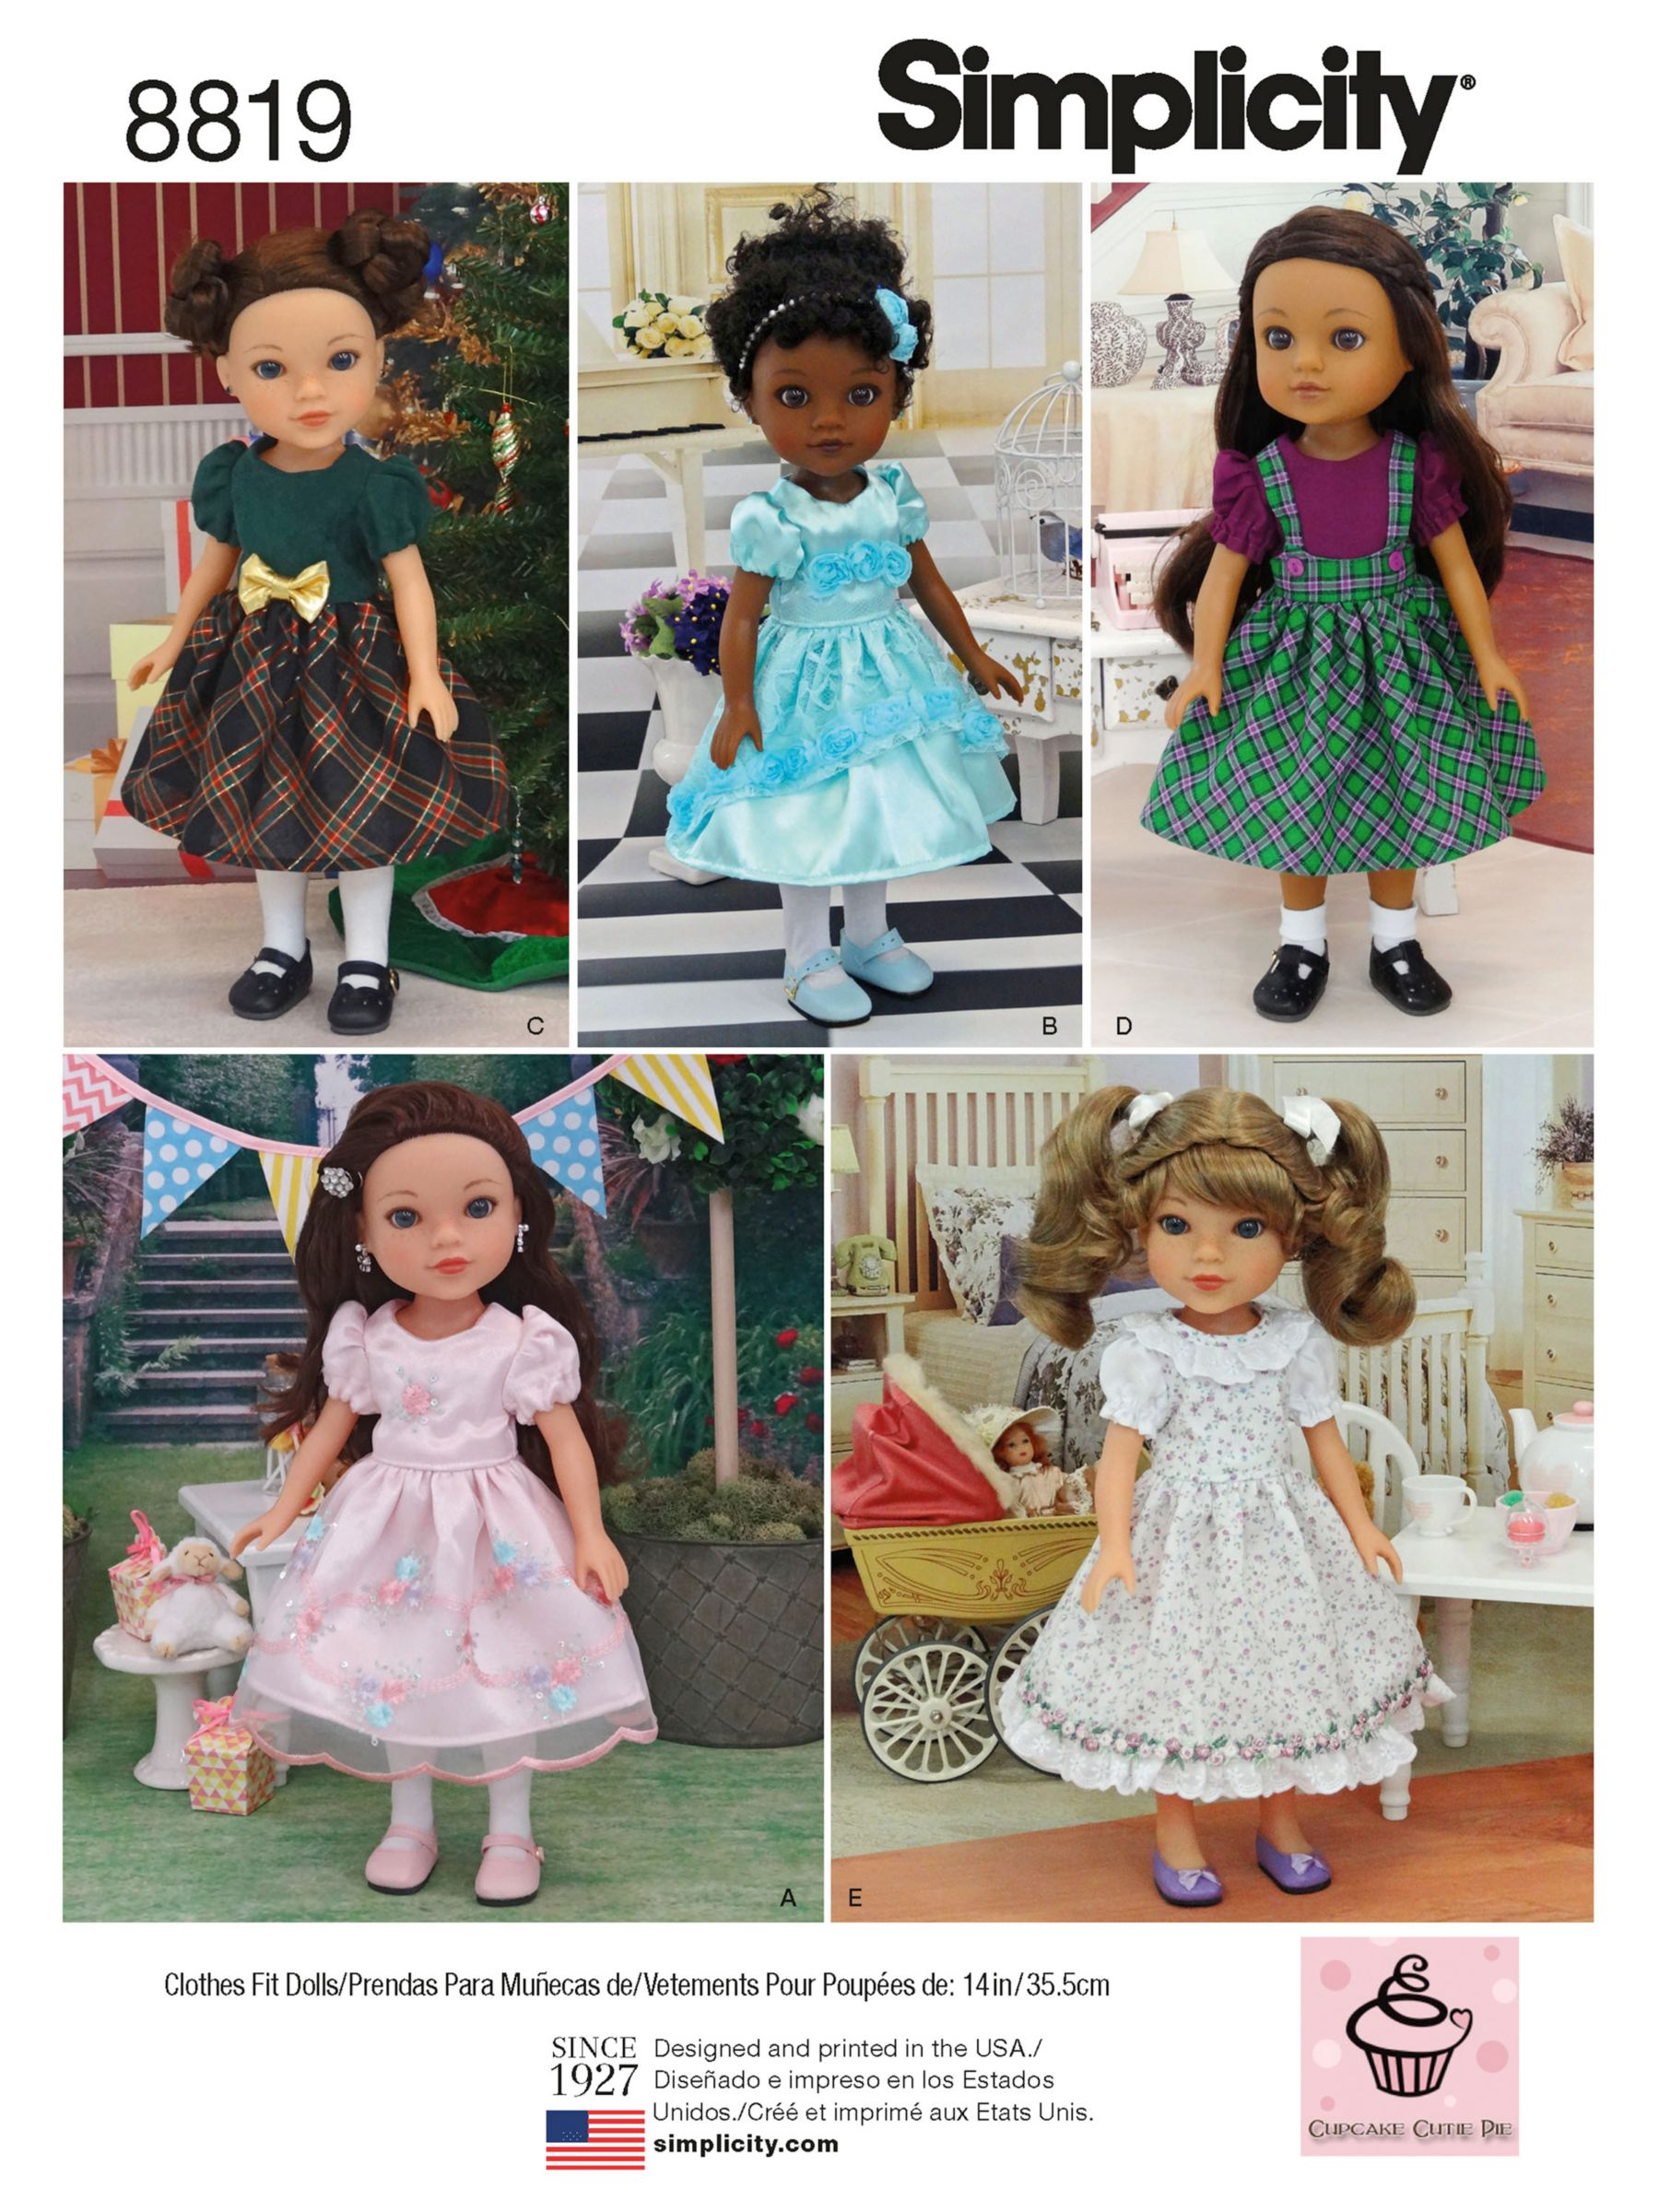 Simplicity Simplicity Children's Doll's Dresses Sewing Pattern, 8819